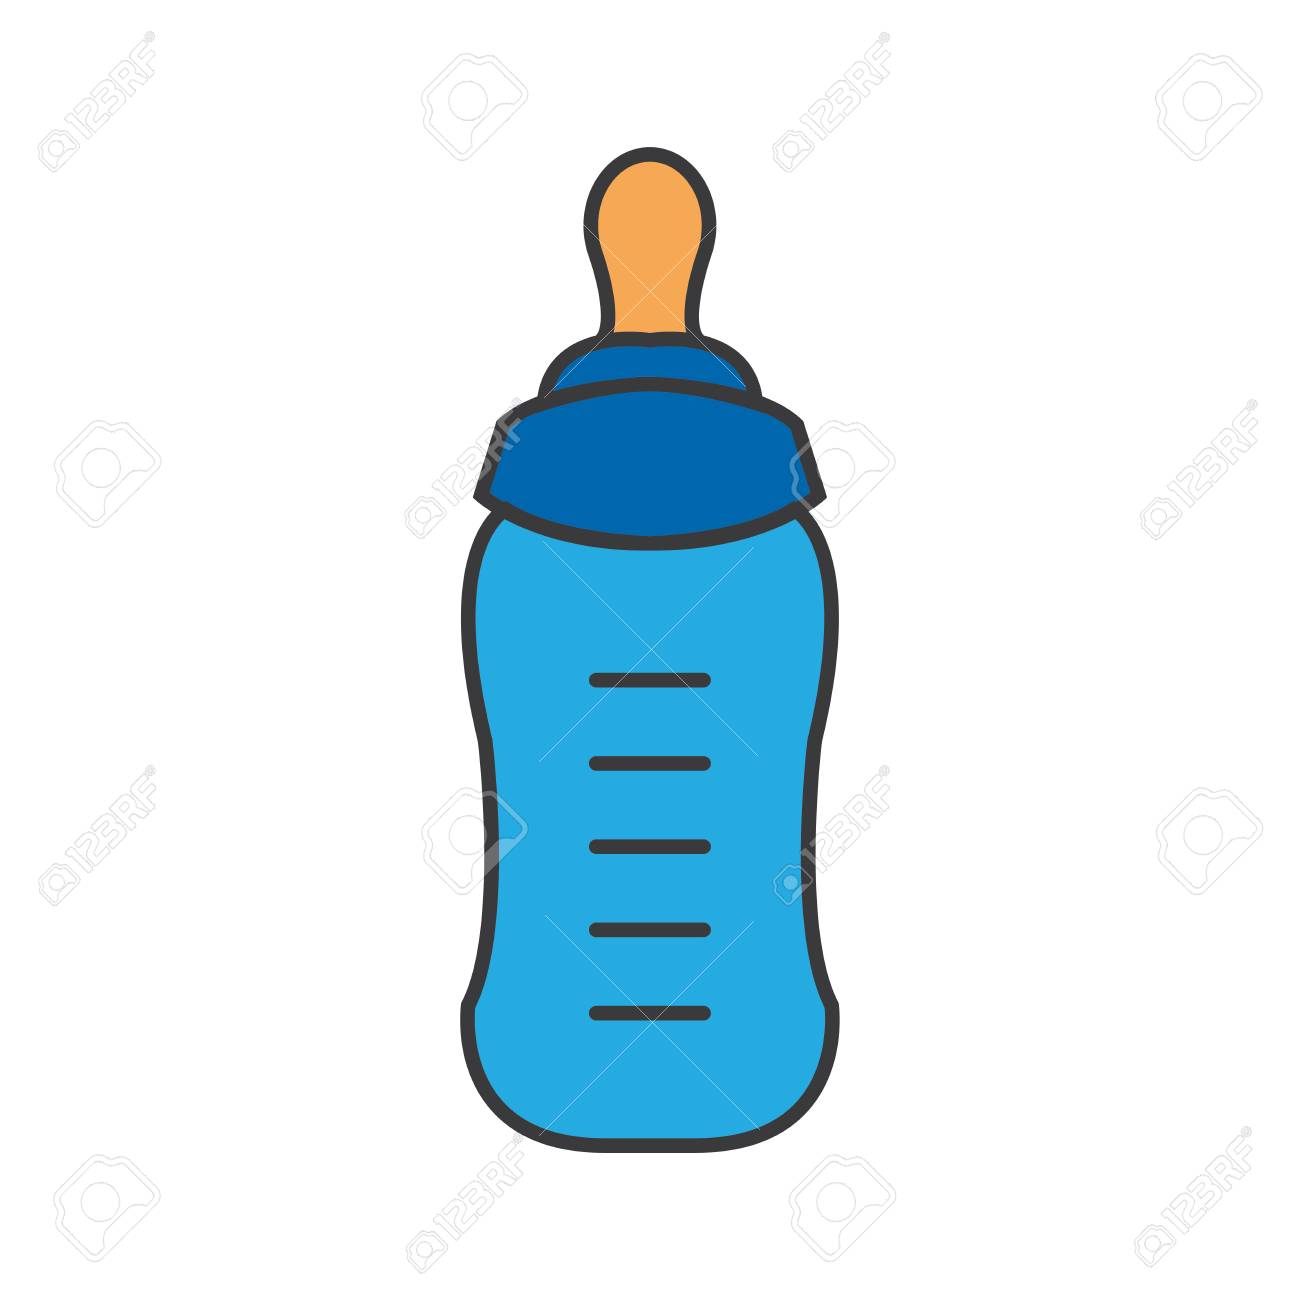 feeding bottle or baby bottle for infants and young children rh 123rf com baby bottle vector png baby bottle vector png